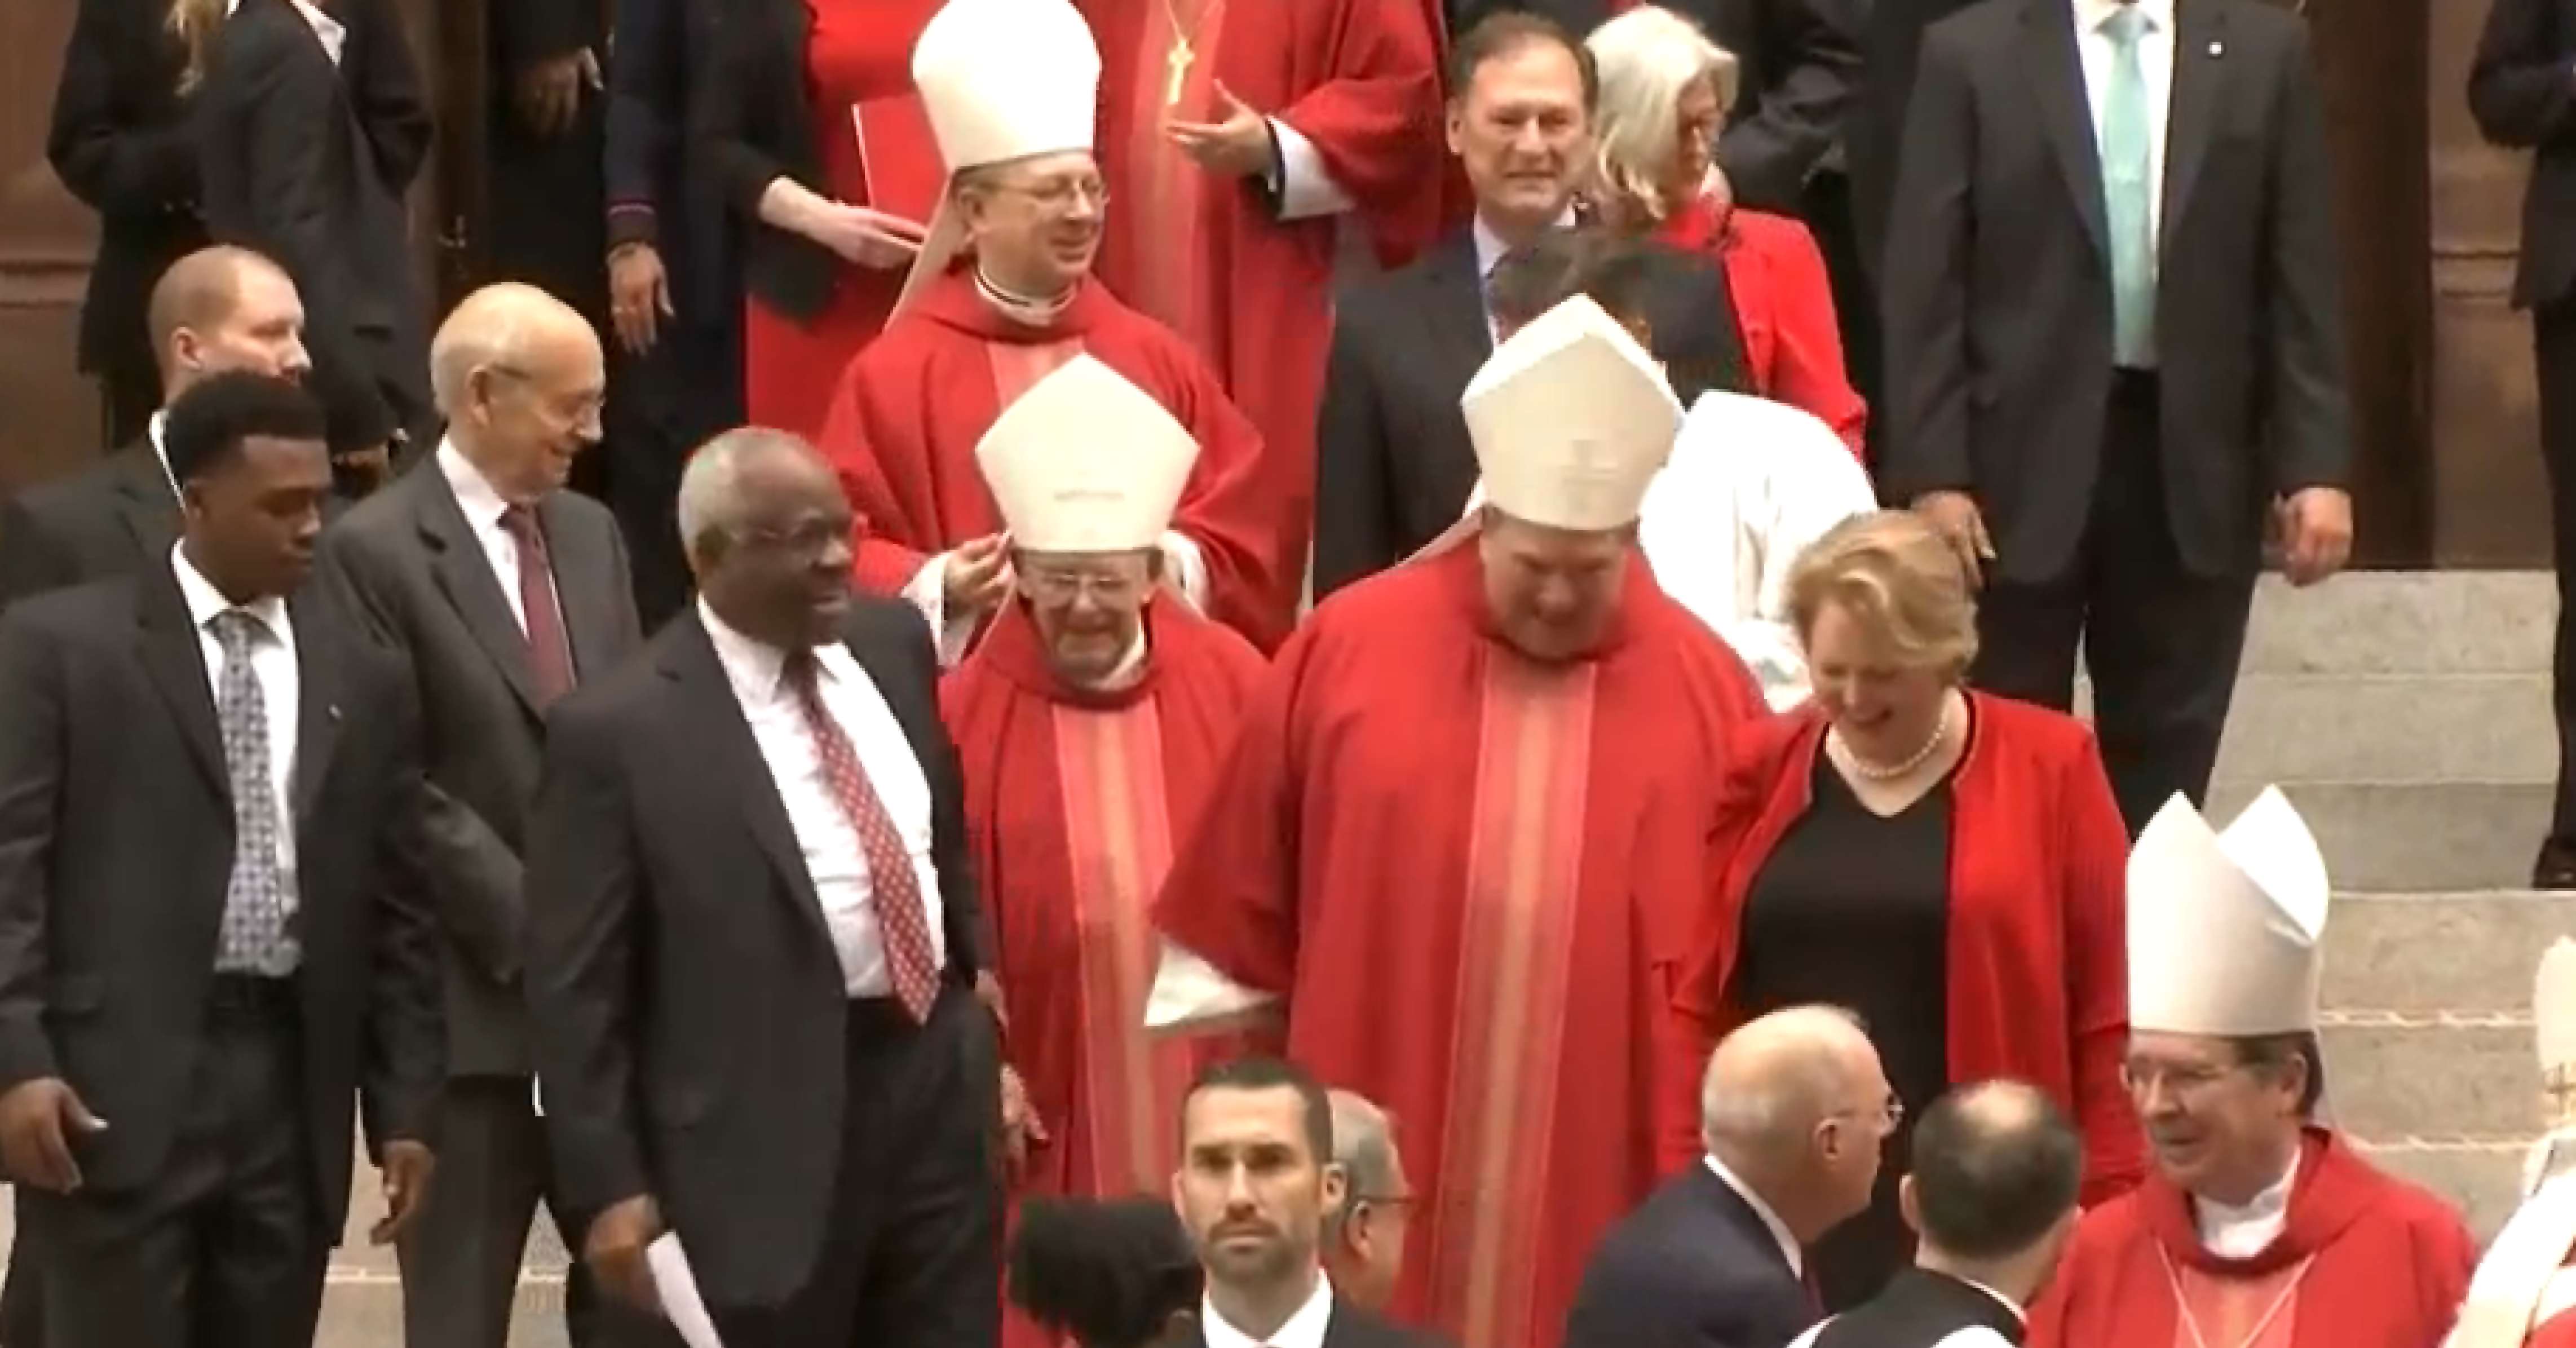 Screenshot of Justices Thomas, Kennedy, and Alito among the red clad clergy, exiting the mass. Courtesy of C-SPAN